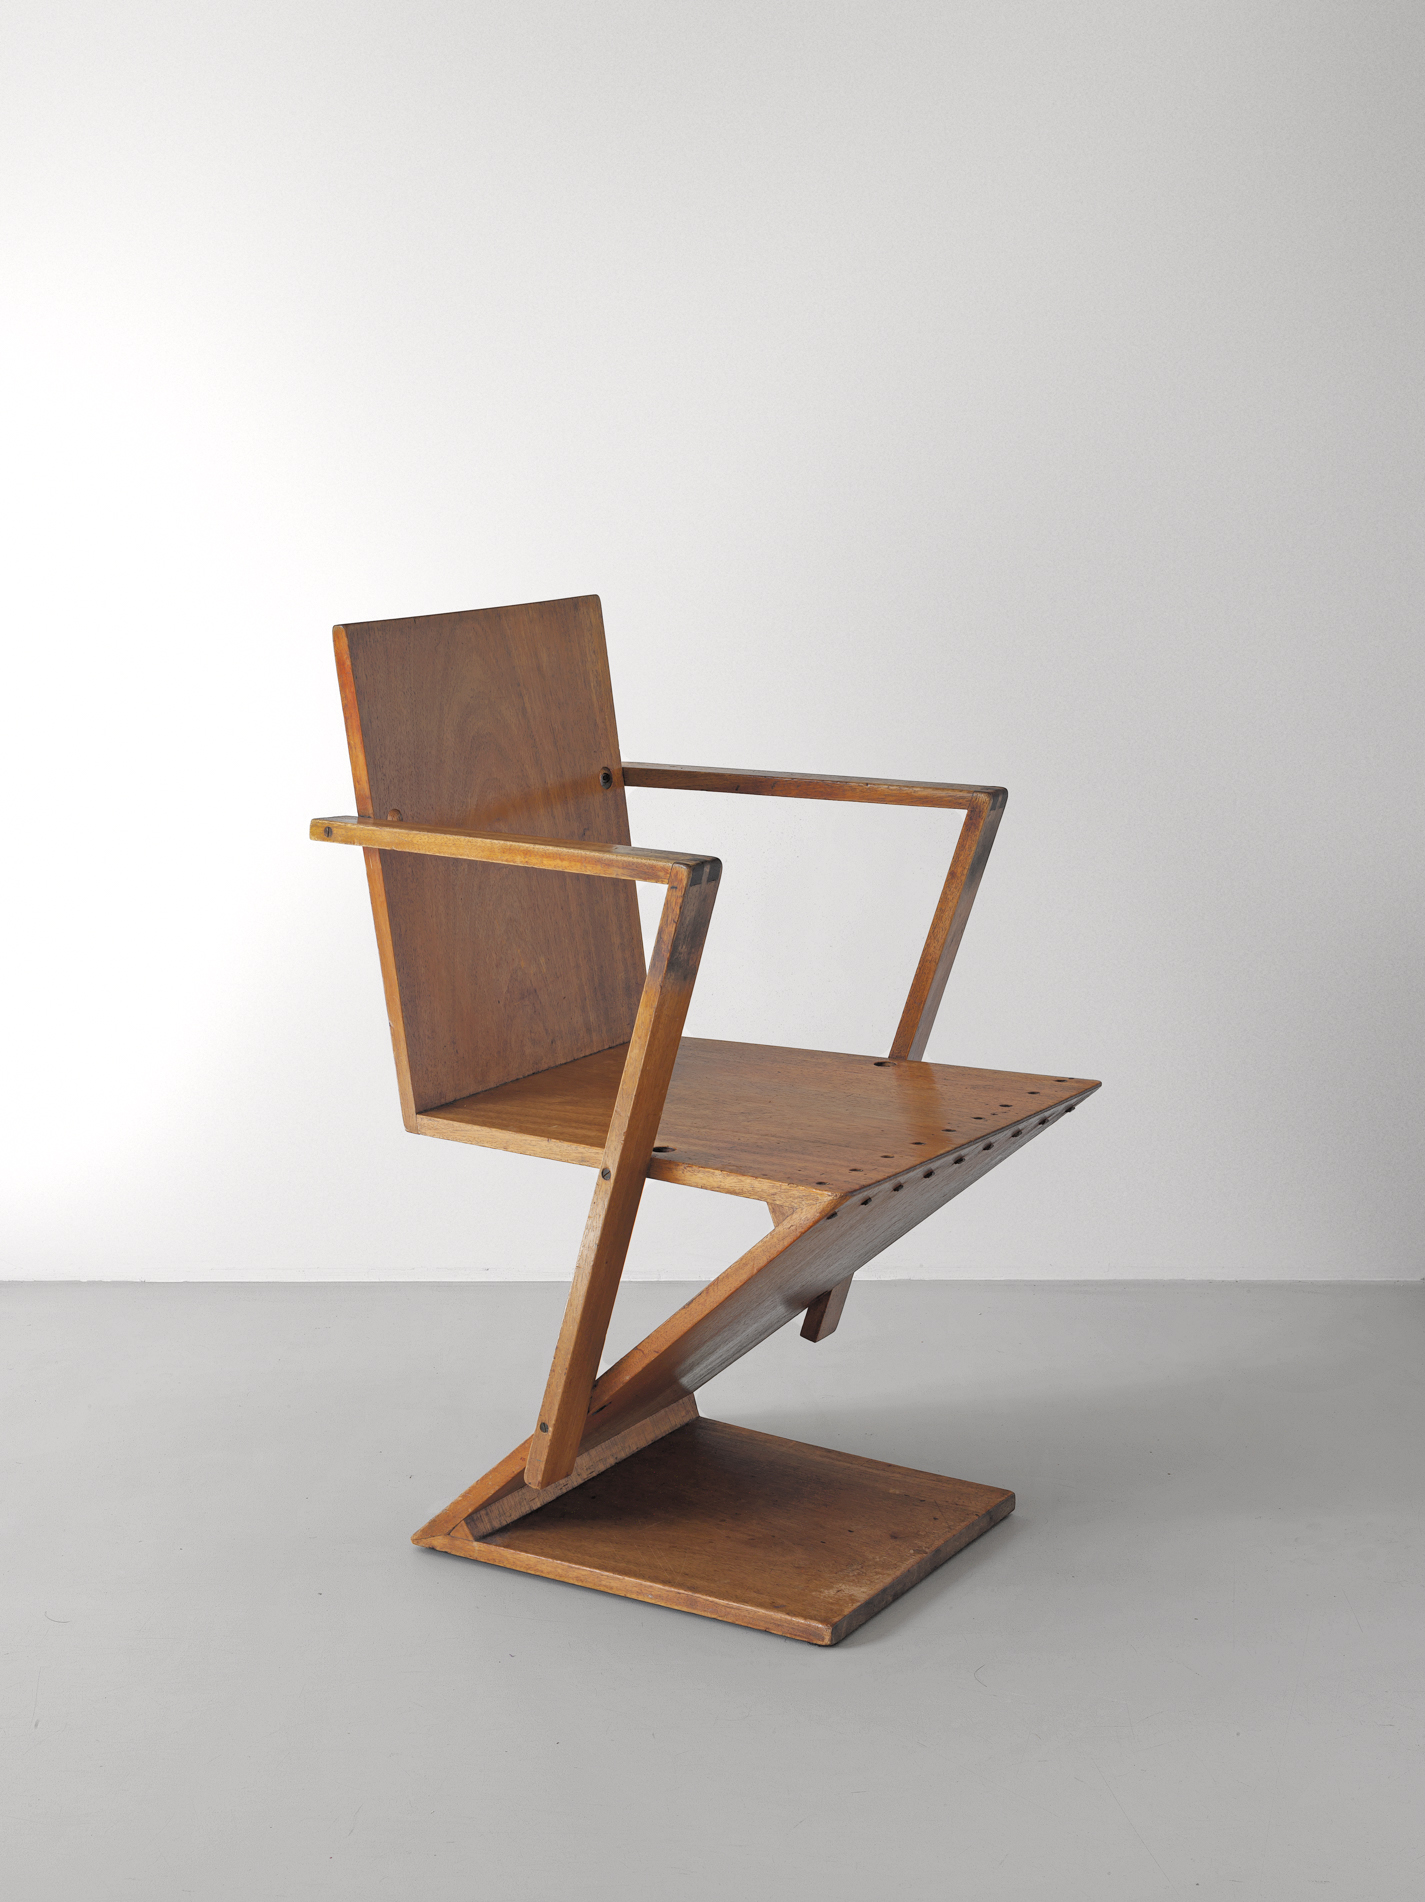 Zigzag Chair With Art Rests By Gerrit Rietvelt, 1932.